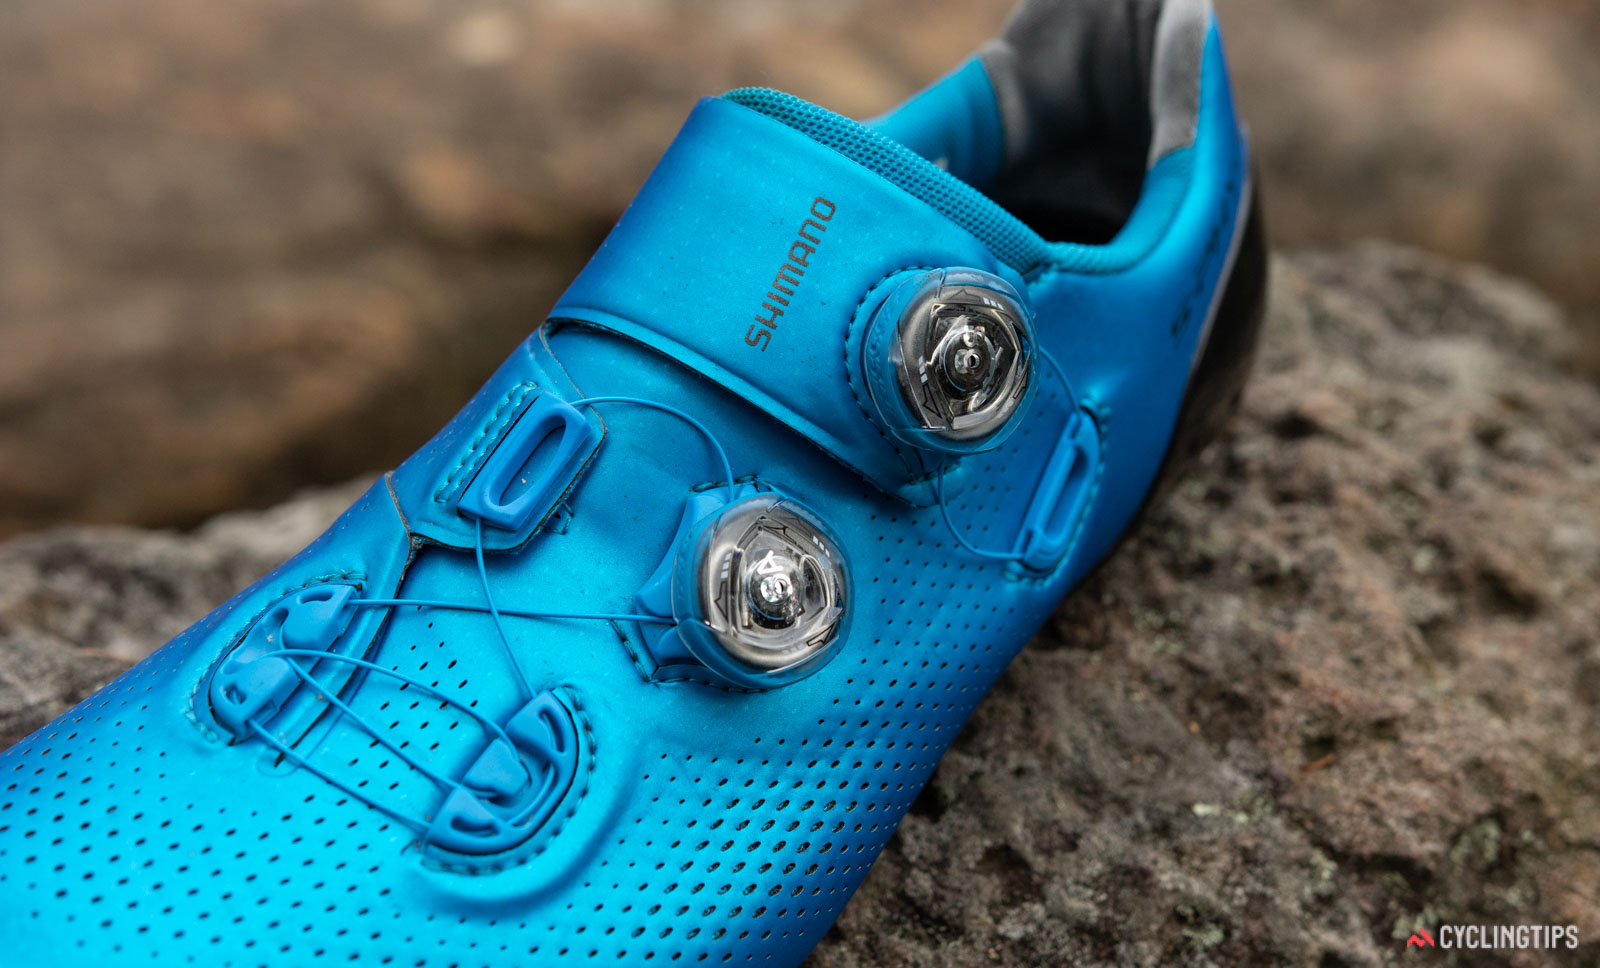 Shimano S-Phyre XC9 SPD shoes